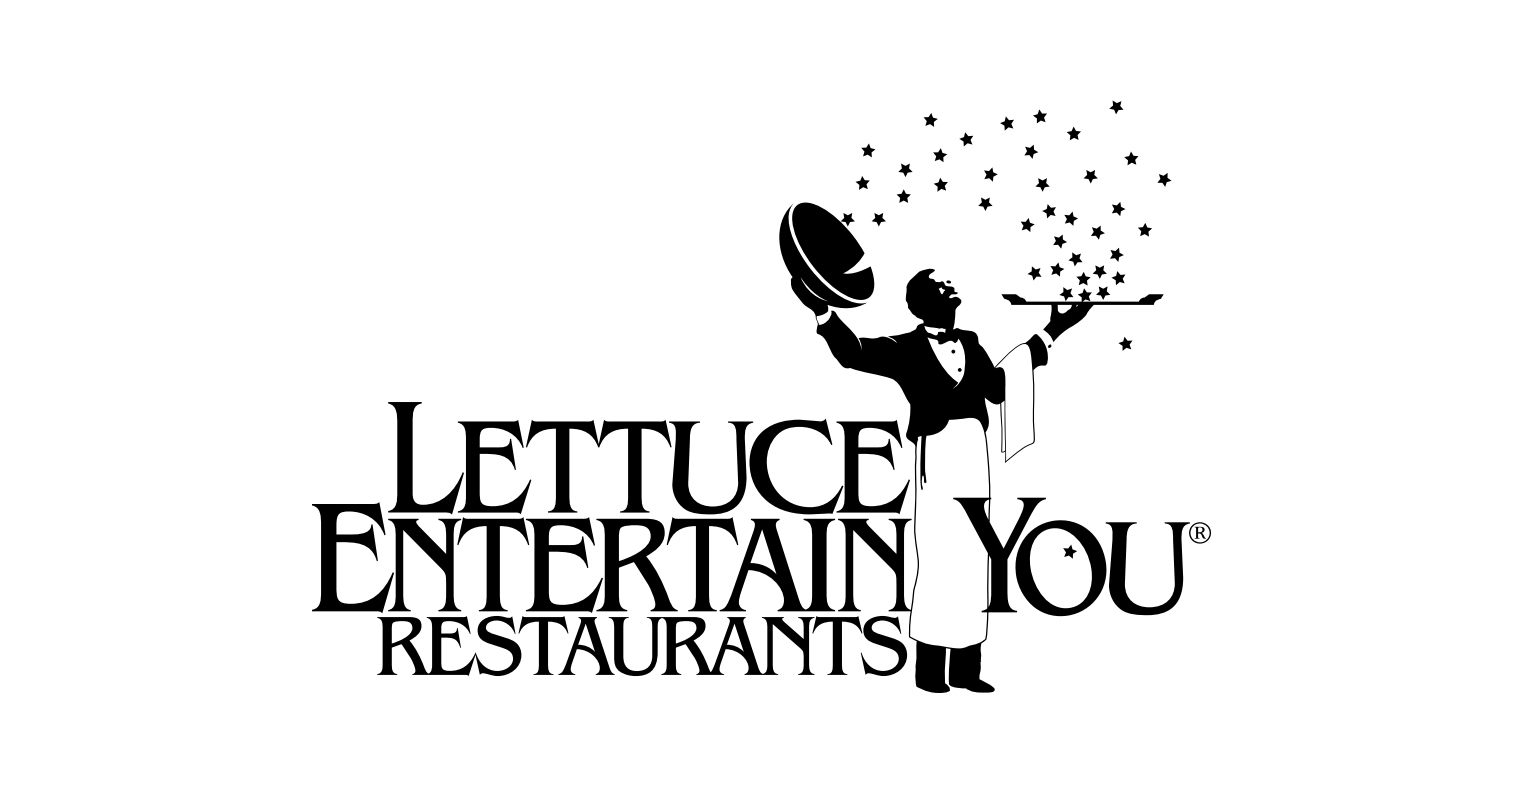 r j melman named president of lettuce entertain you